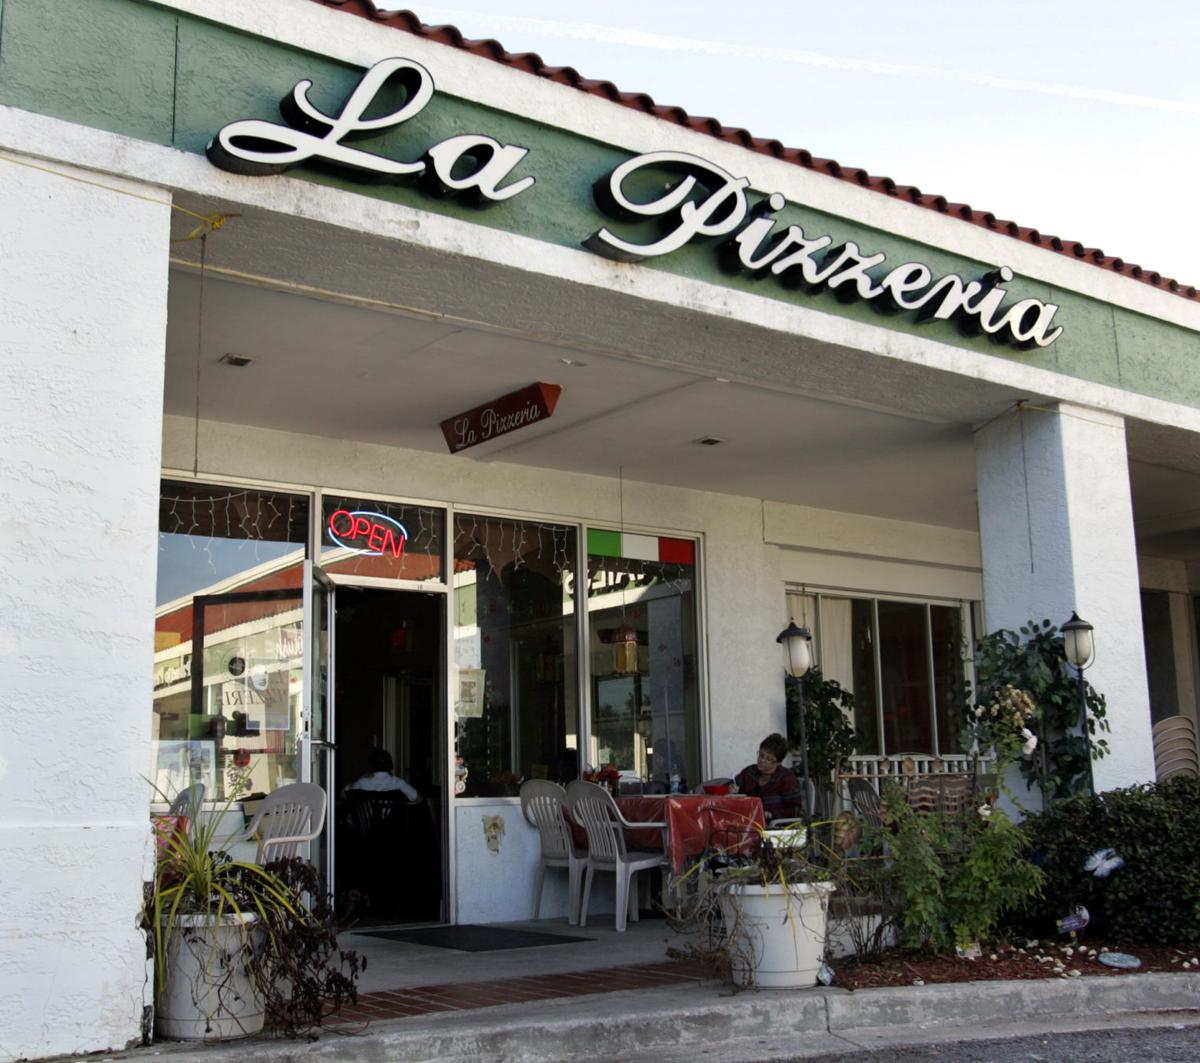 Worker shortage temporarily shuts La Pizzeria